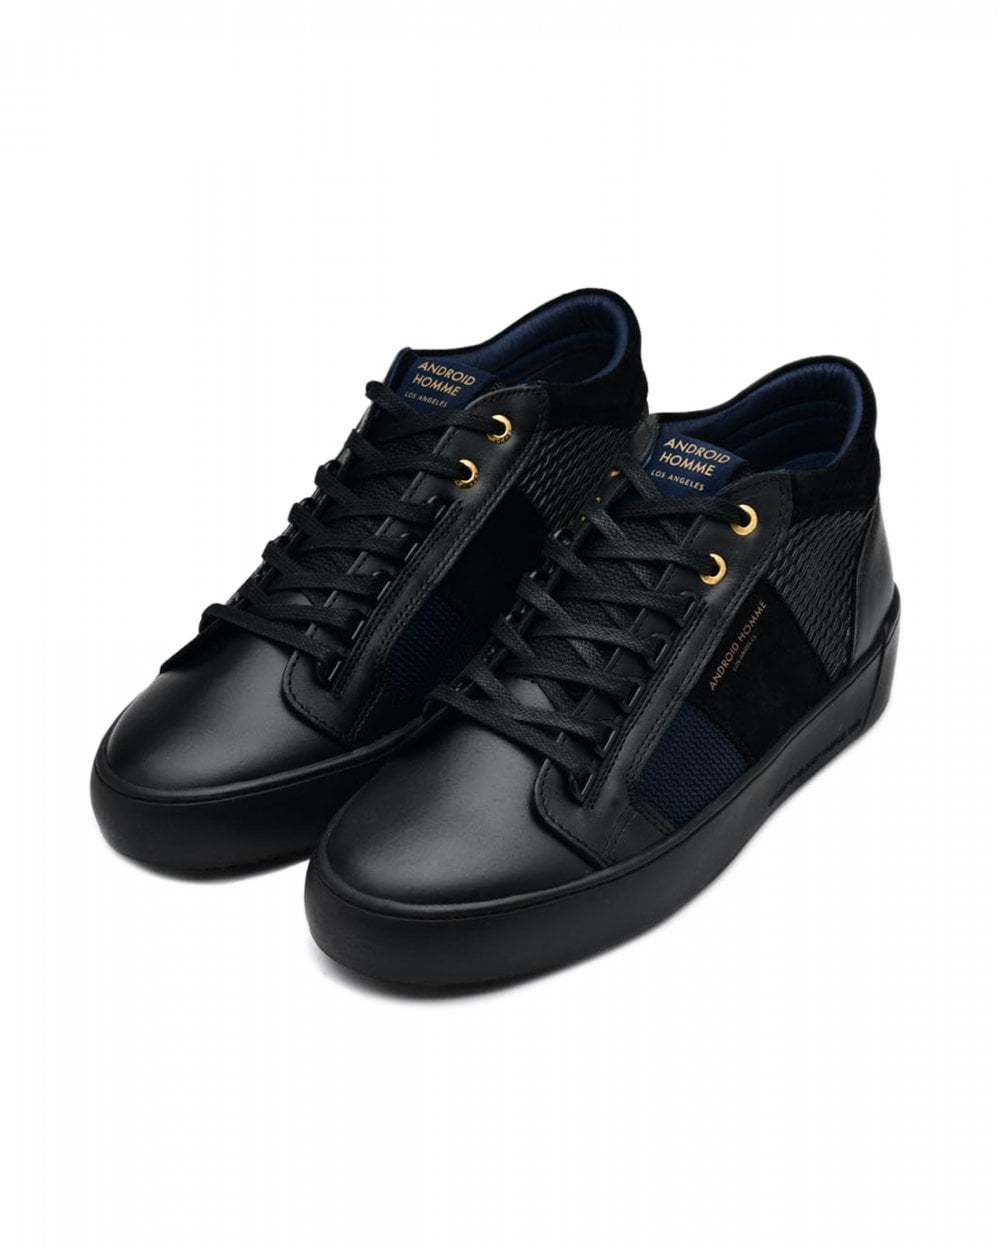 Android Homme Mens Propulsion Mid Geo Trainers Black